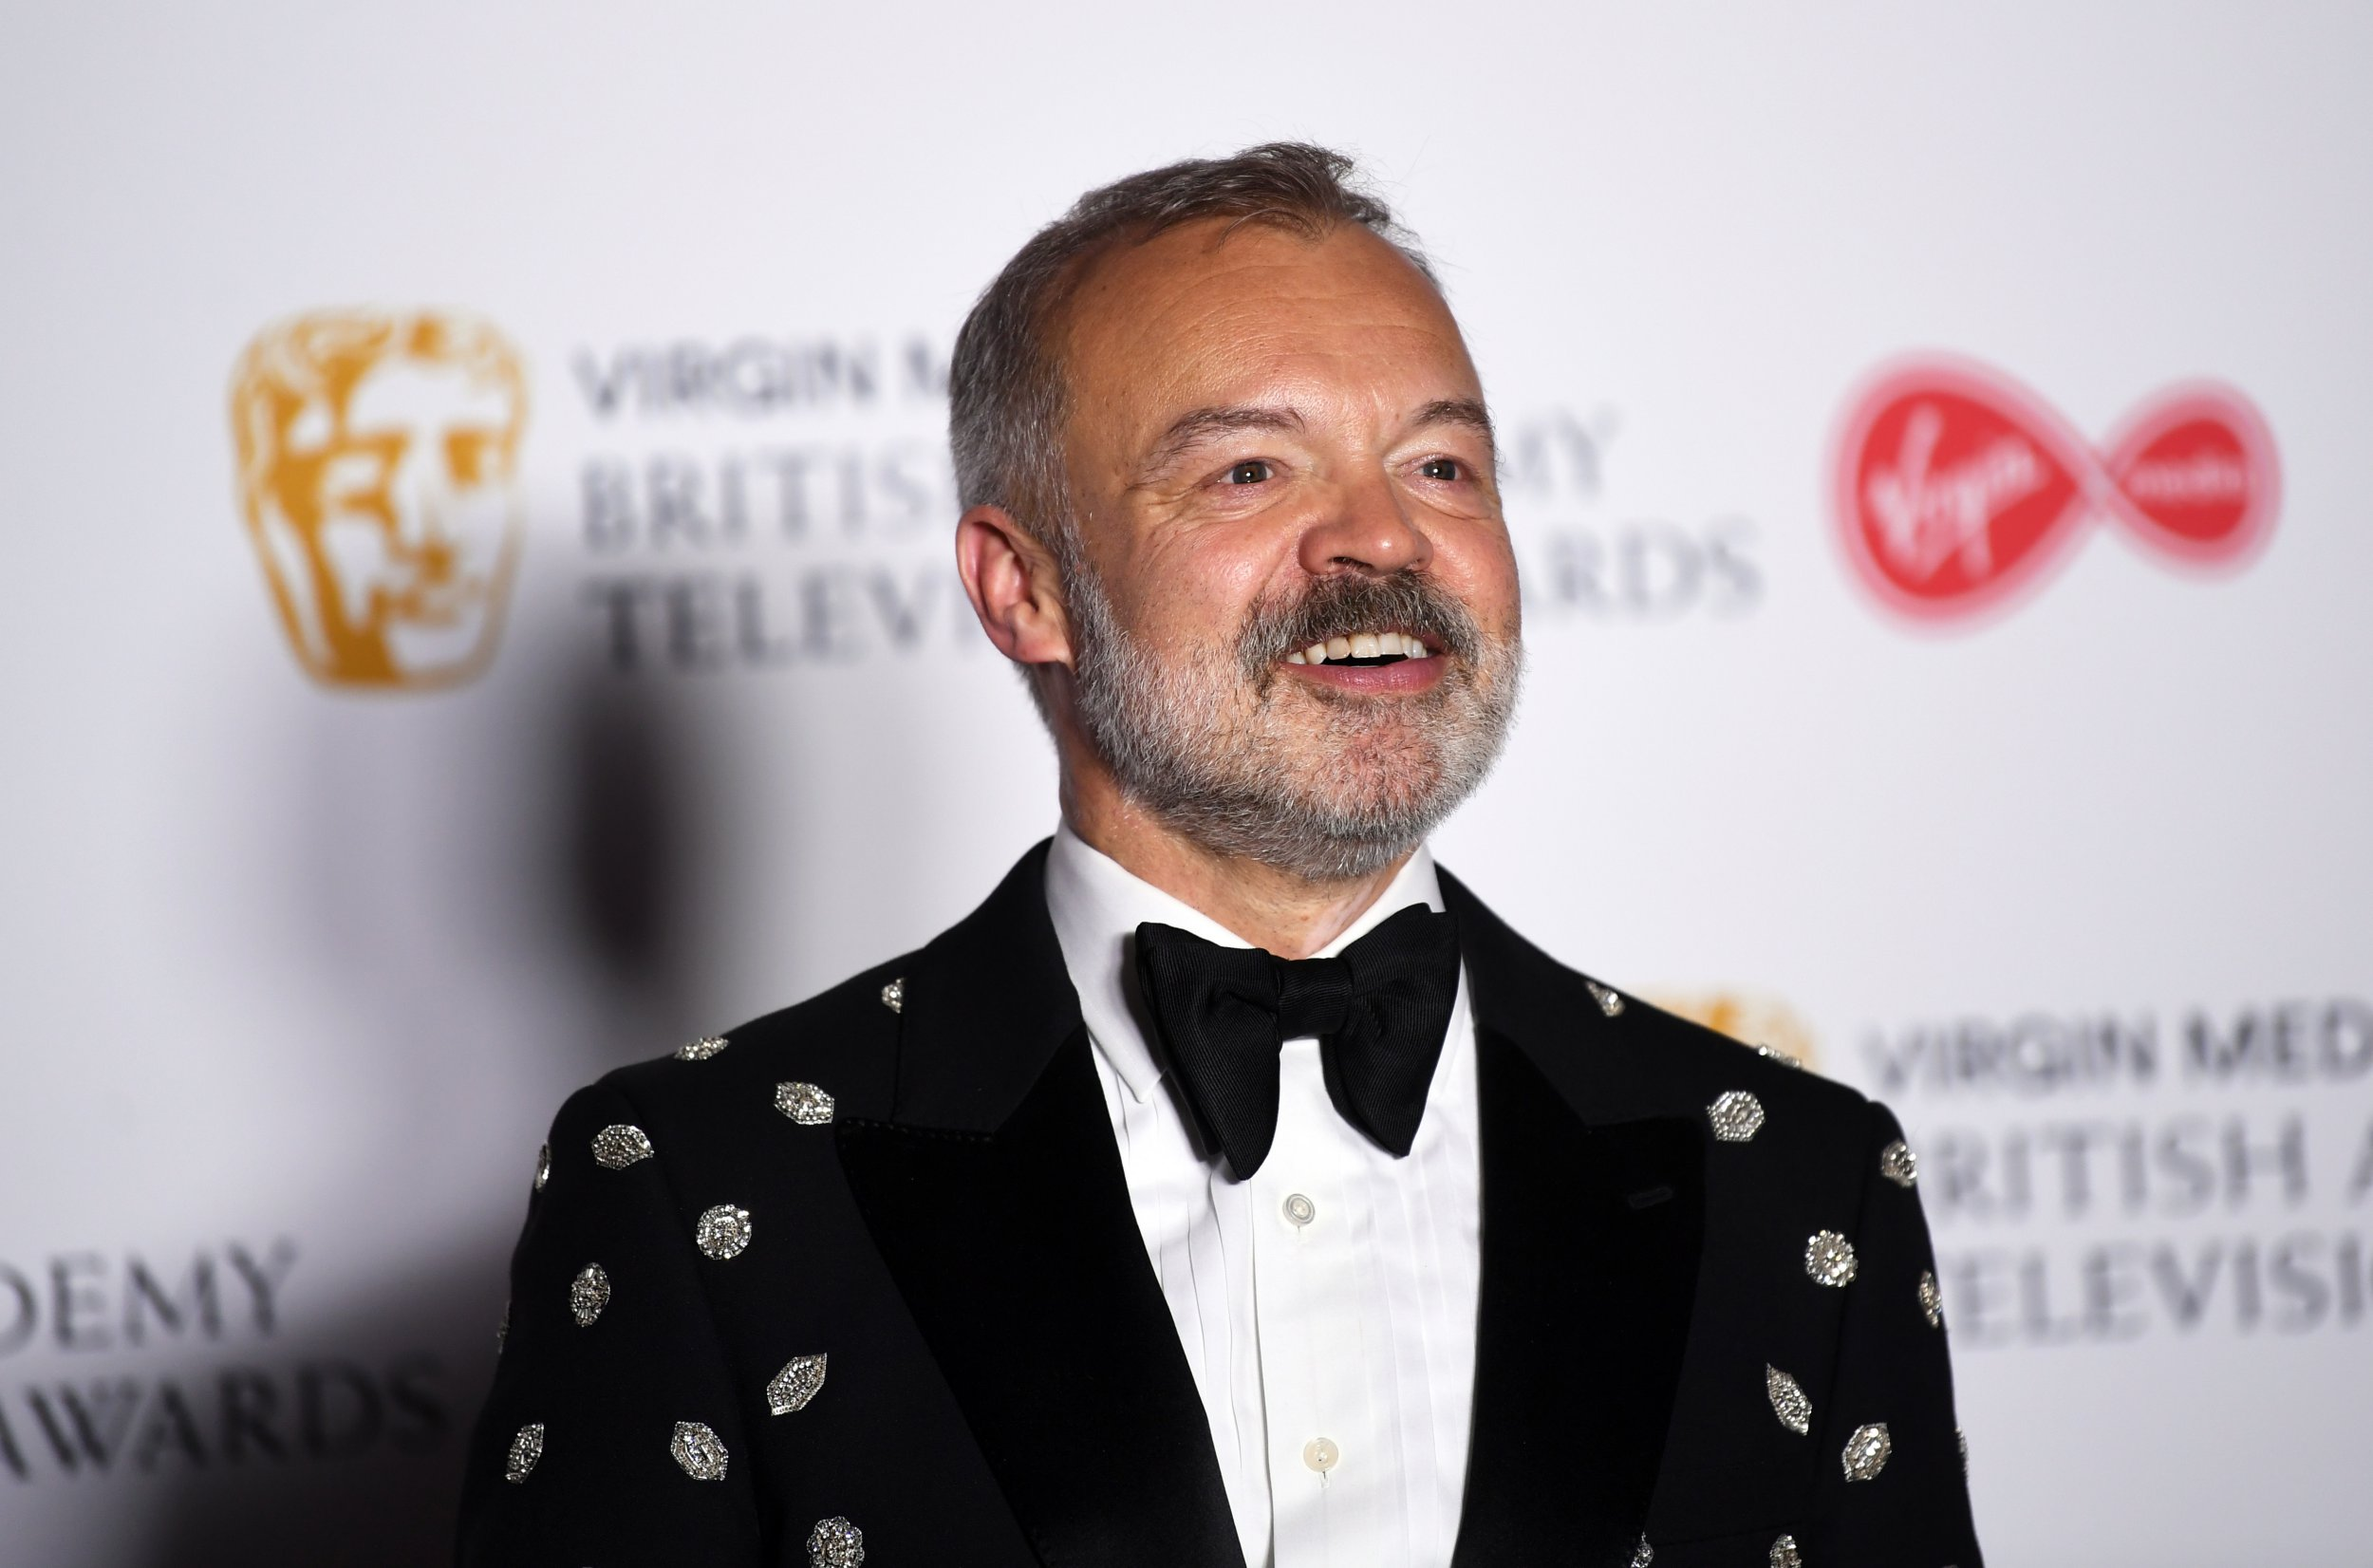 Graham Norton's scathing Eurovision Song Contest commentary had fans in stitches: Here are his best gags